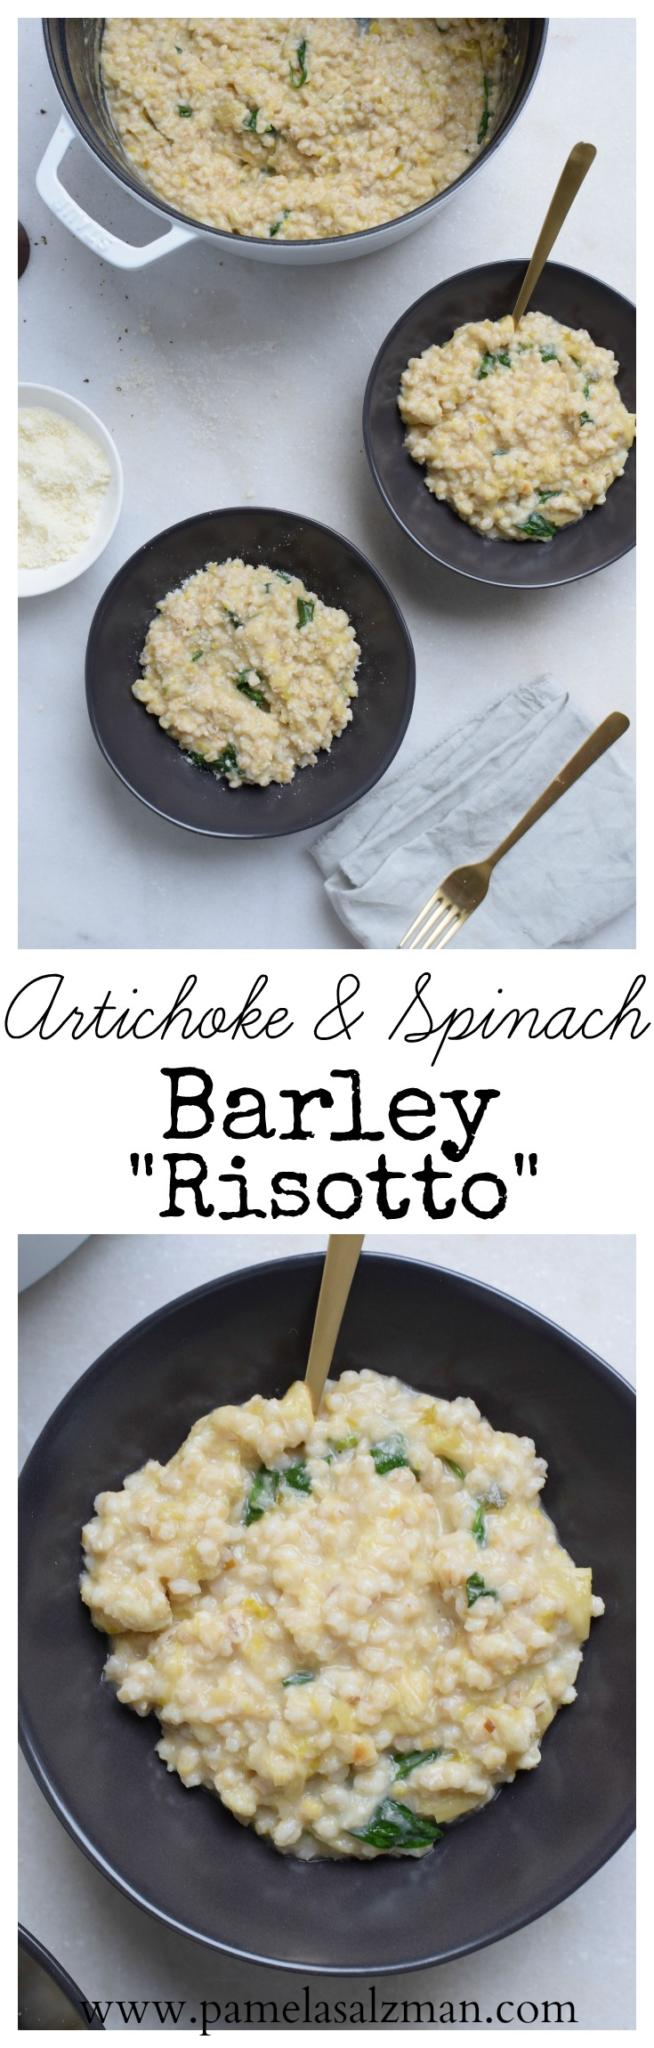 "Artichoke and Spinach Barley ""Risotto"" 